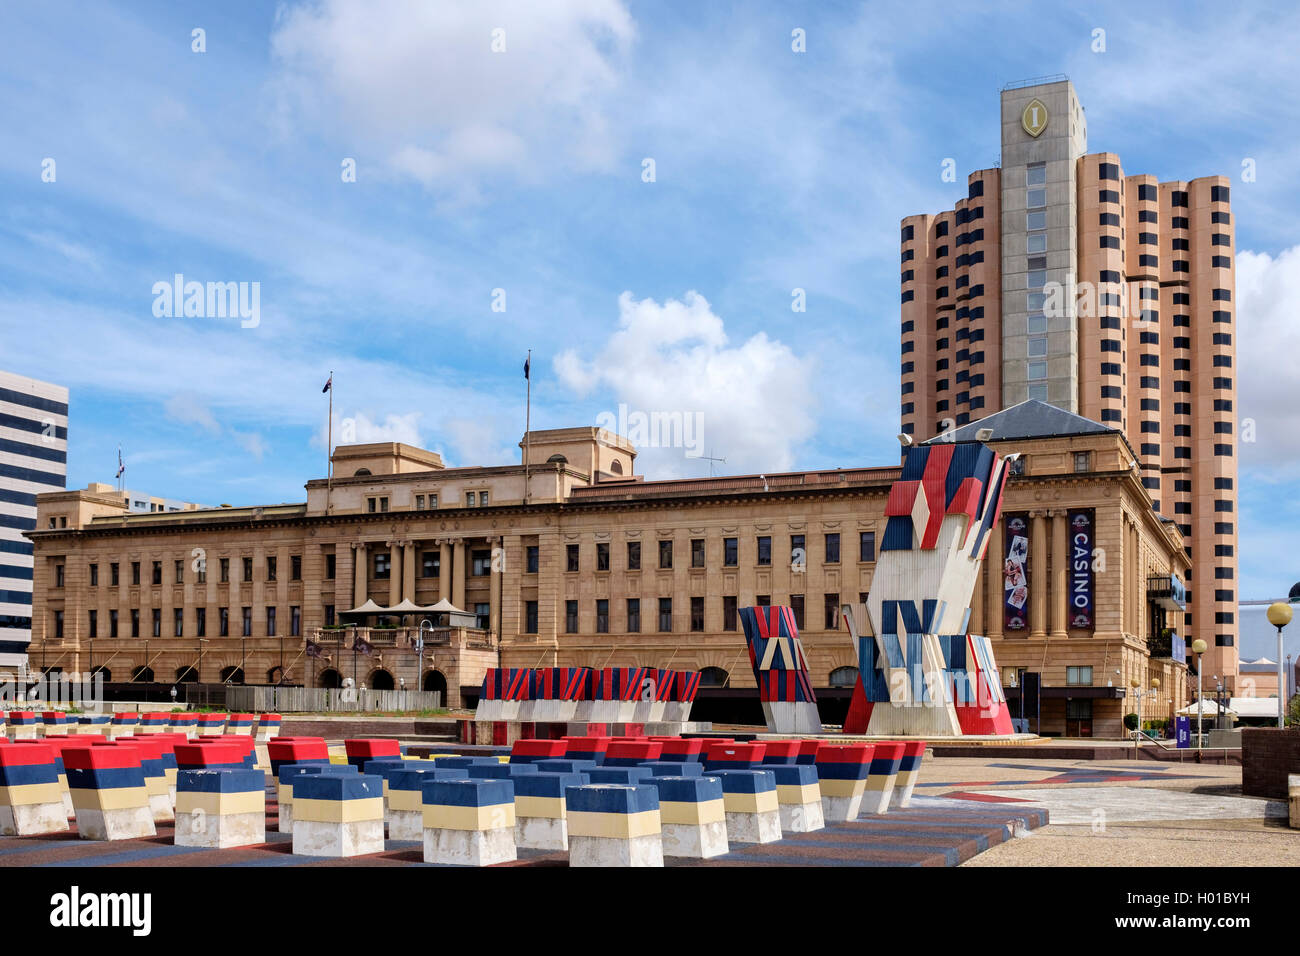 The facade of the architecturally ornate Adelaide Casino - Stock Image